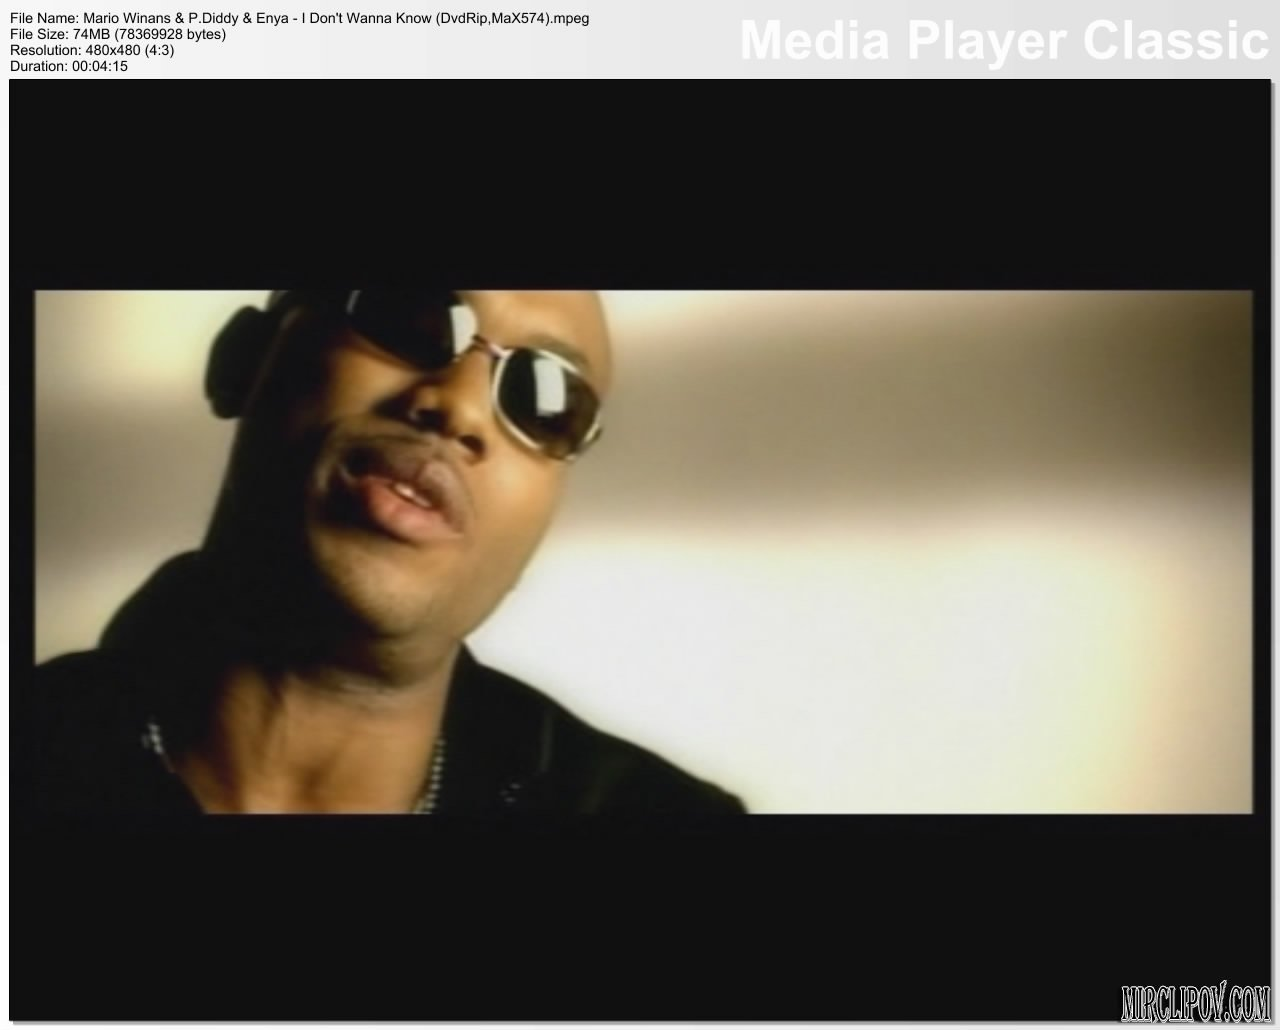 Mario Winans Feat. P. Diddy & Enya - I Don't Wanna Know